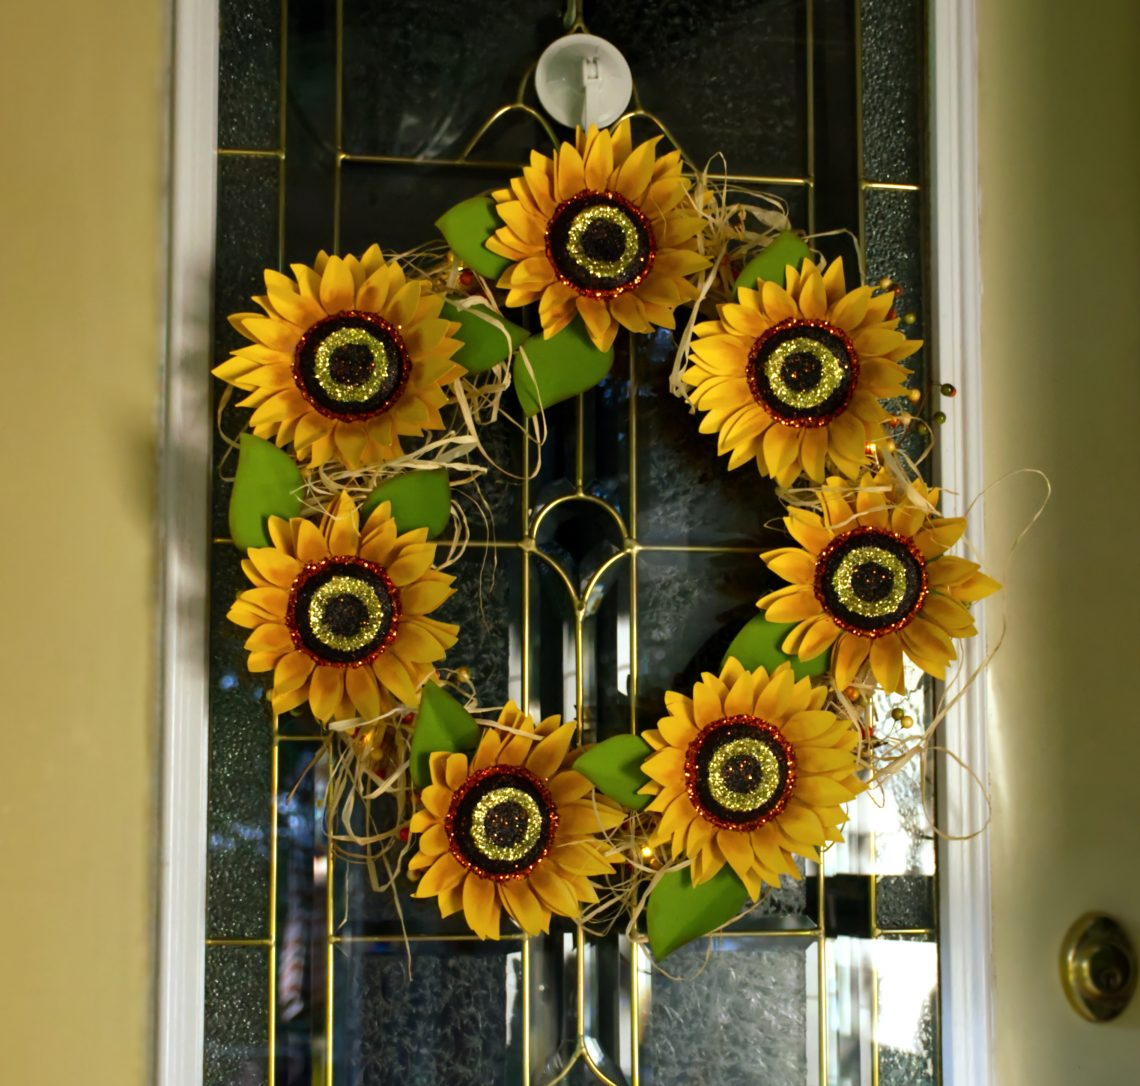 You are looking at my completed Harvest Sunset Sunflower Wreath, from my Harvest Sunset Sunflower Wreath post. The flowers are cut from paper in a bright sunflower color with glitter in the center of the 3D flowers.